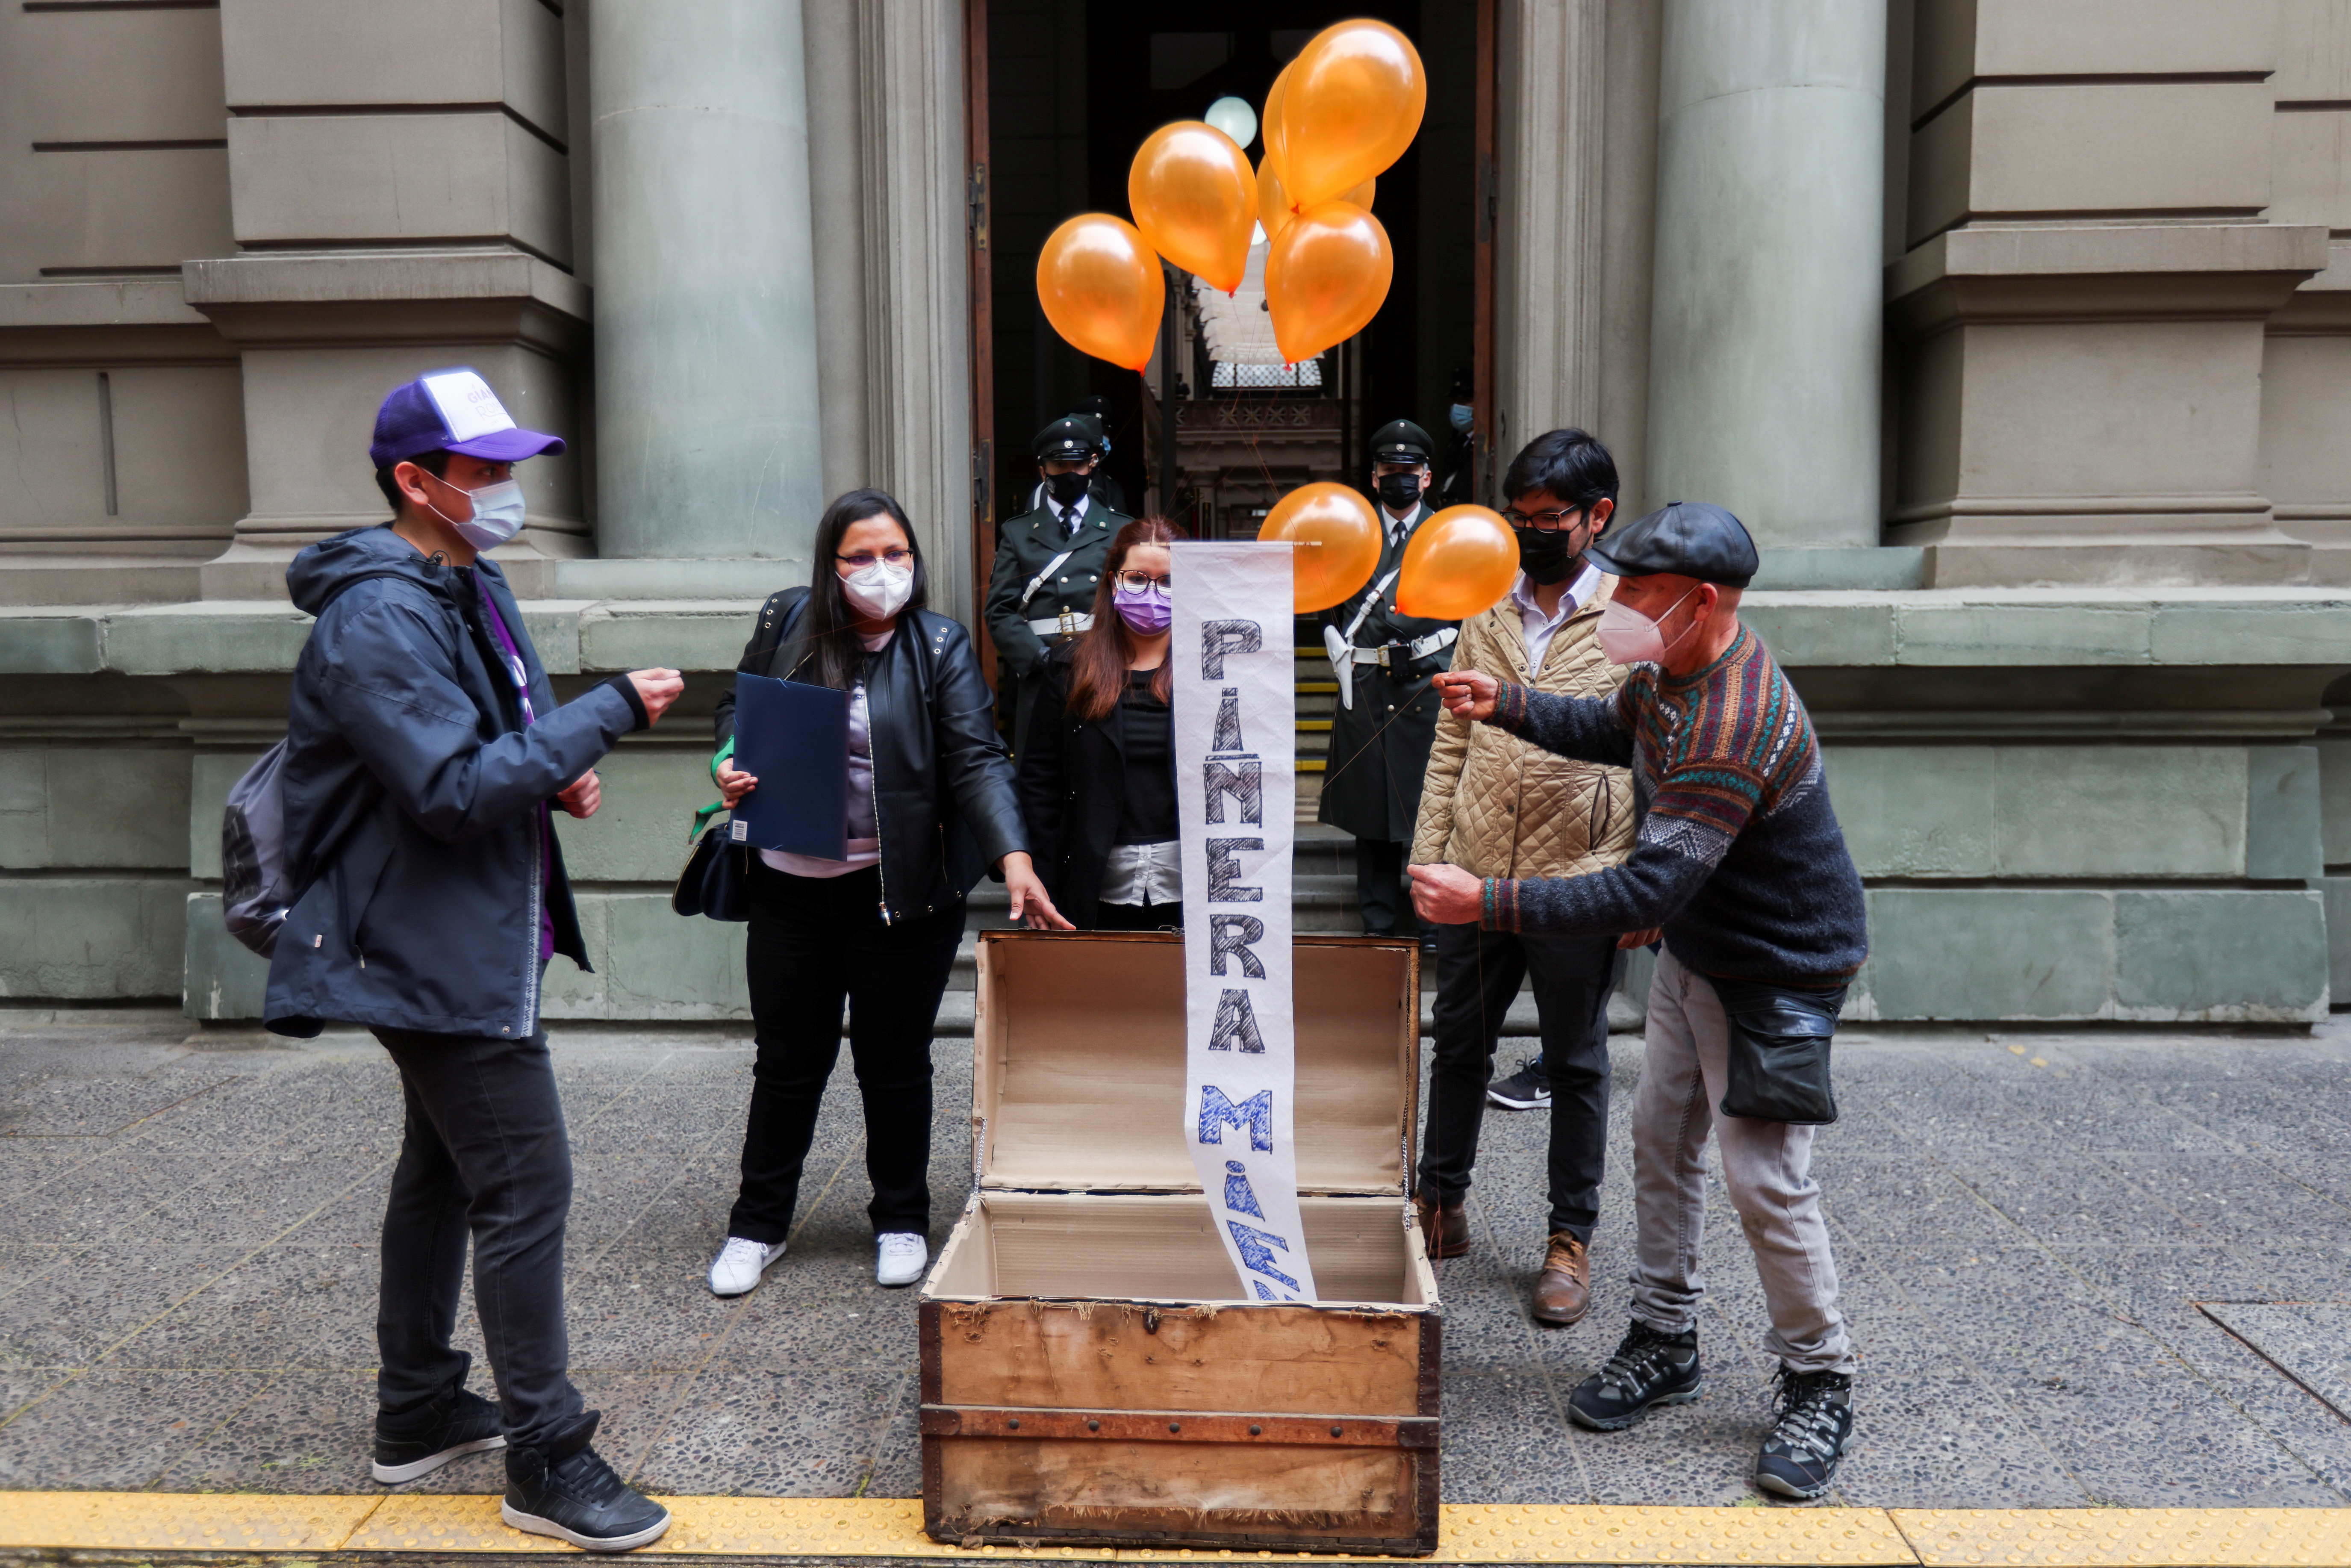 Demonstrators use balloons to lift a banner reading 'Pinera lies again' during a rally against Chile's President Sebastian Pinera , who according to the Pandora Papers investigation, used a tax haven to carry out the sale of the